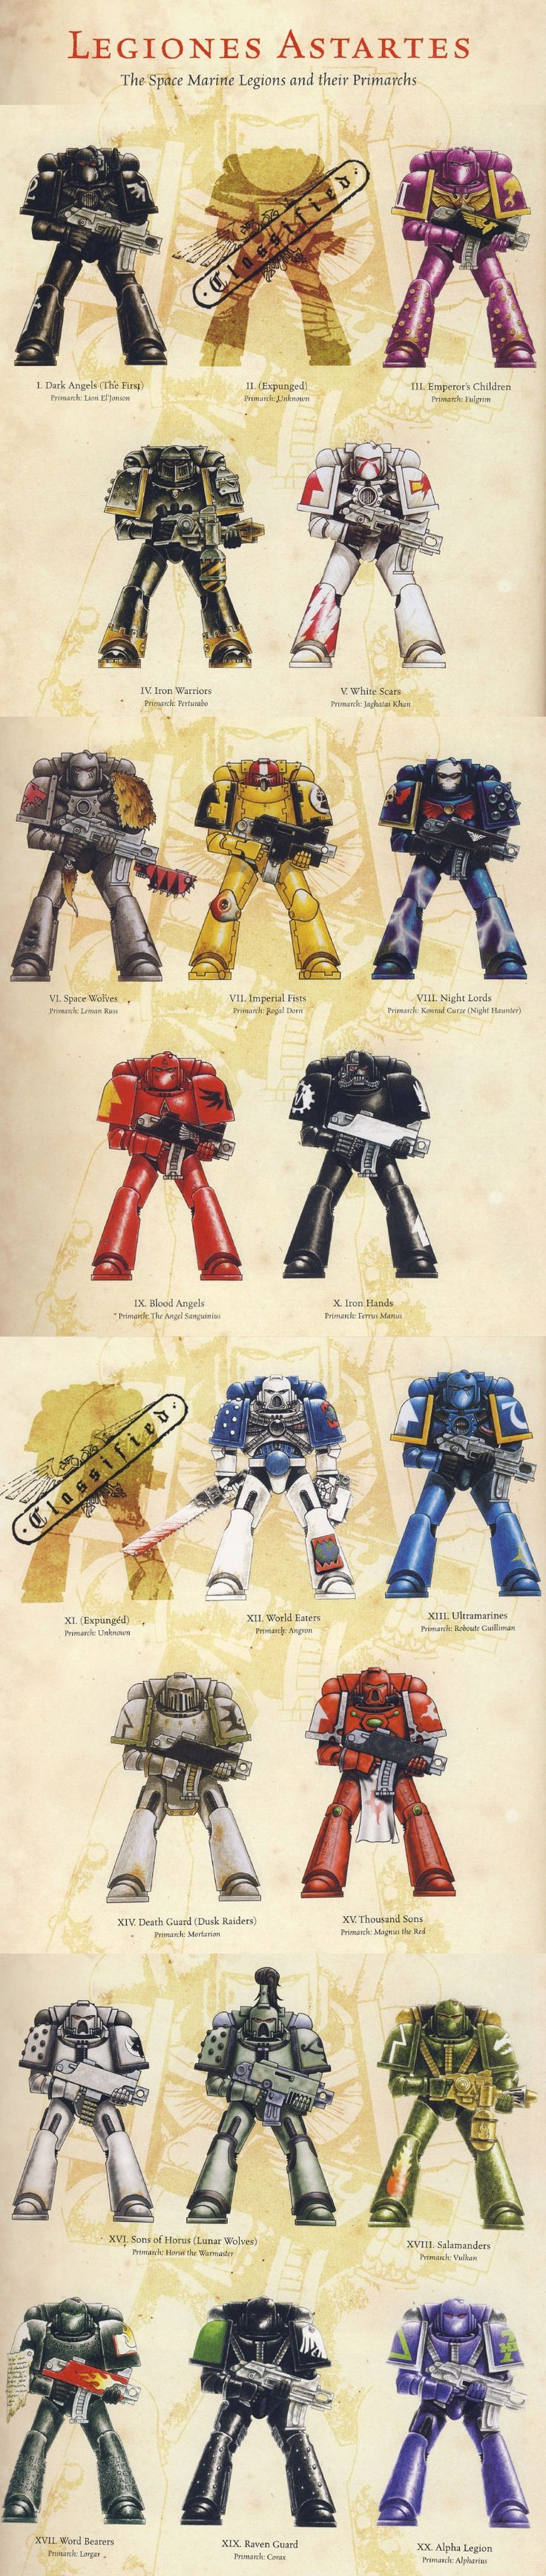 40k - Astartes Legions (in the style of '1st 12'):